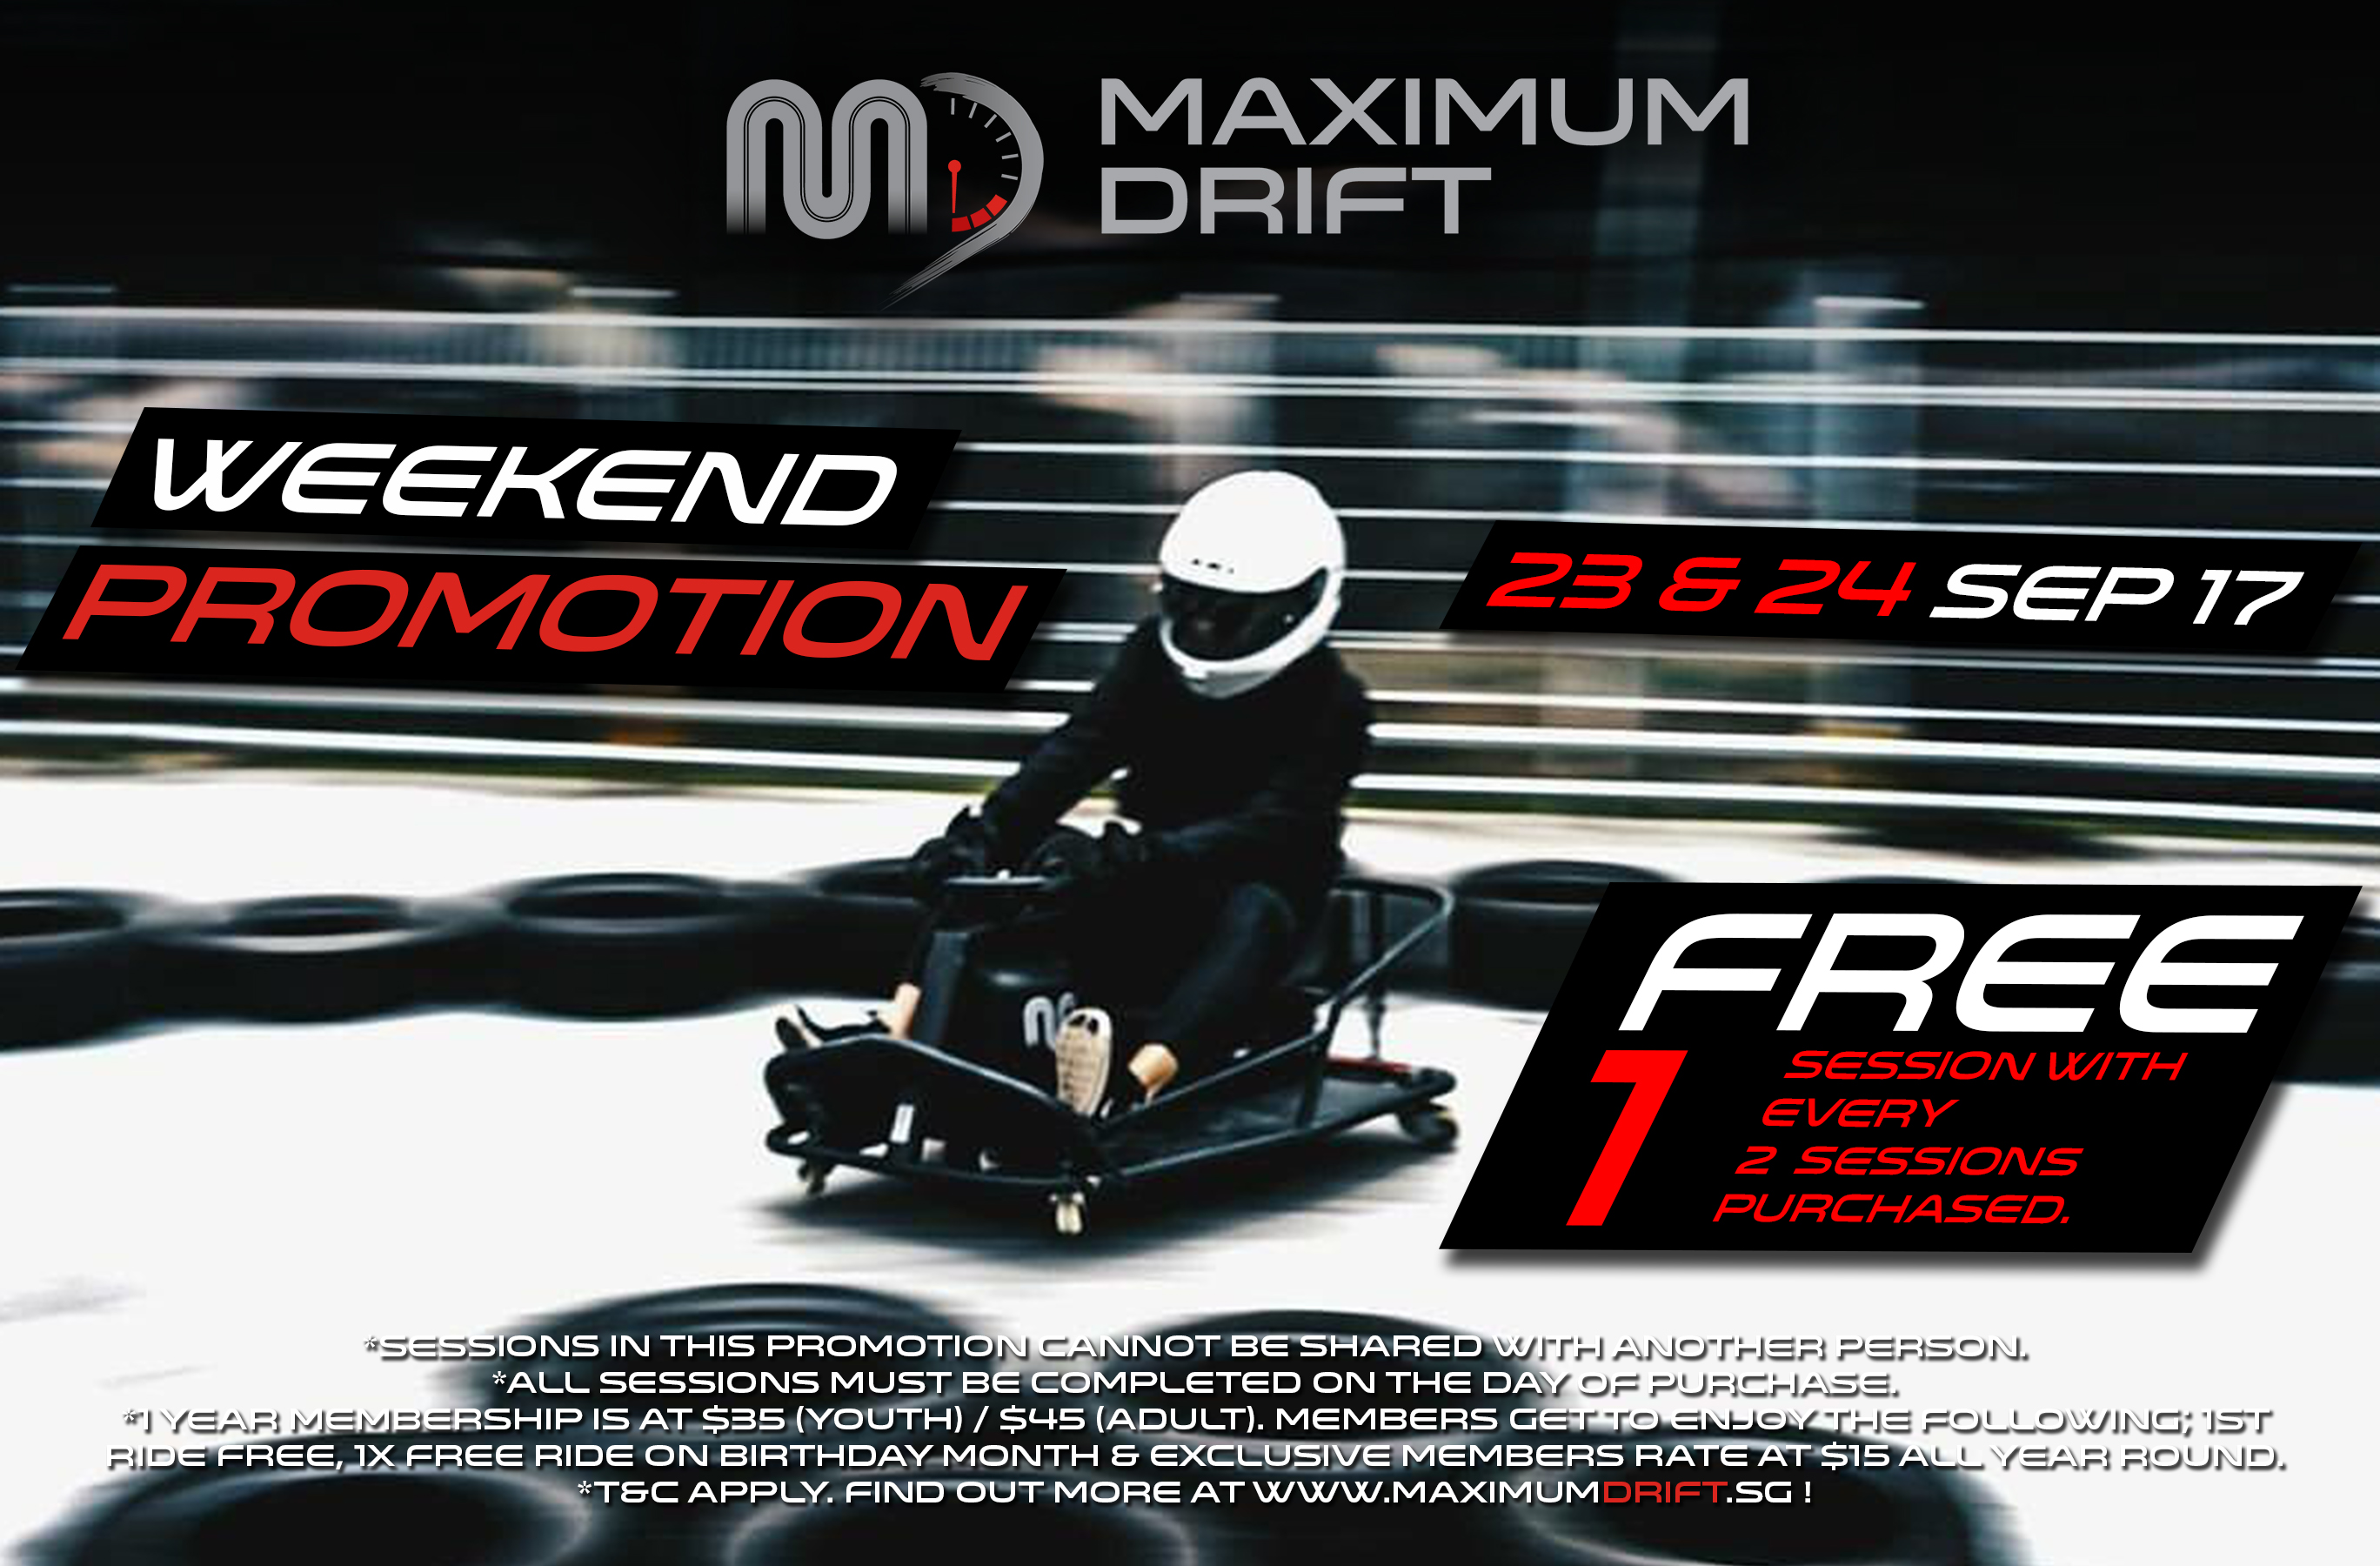 Maximum Drift Weekend Promotions!